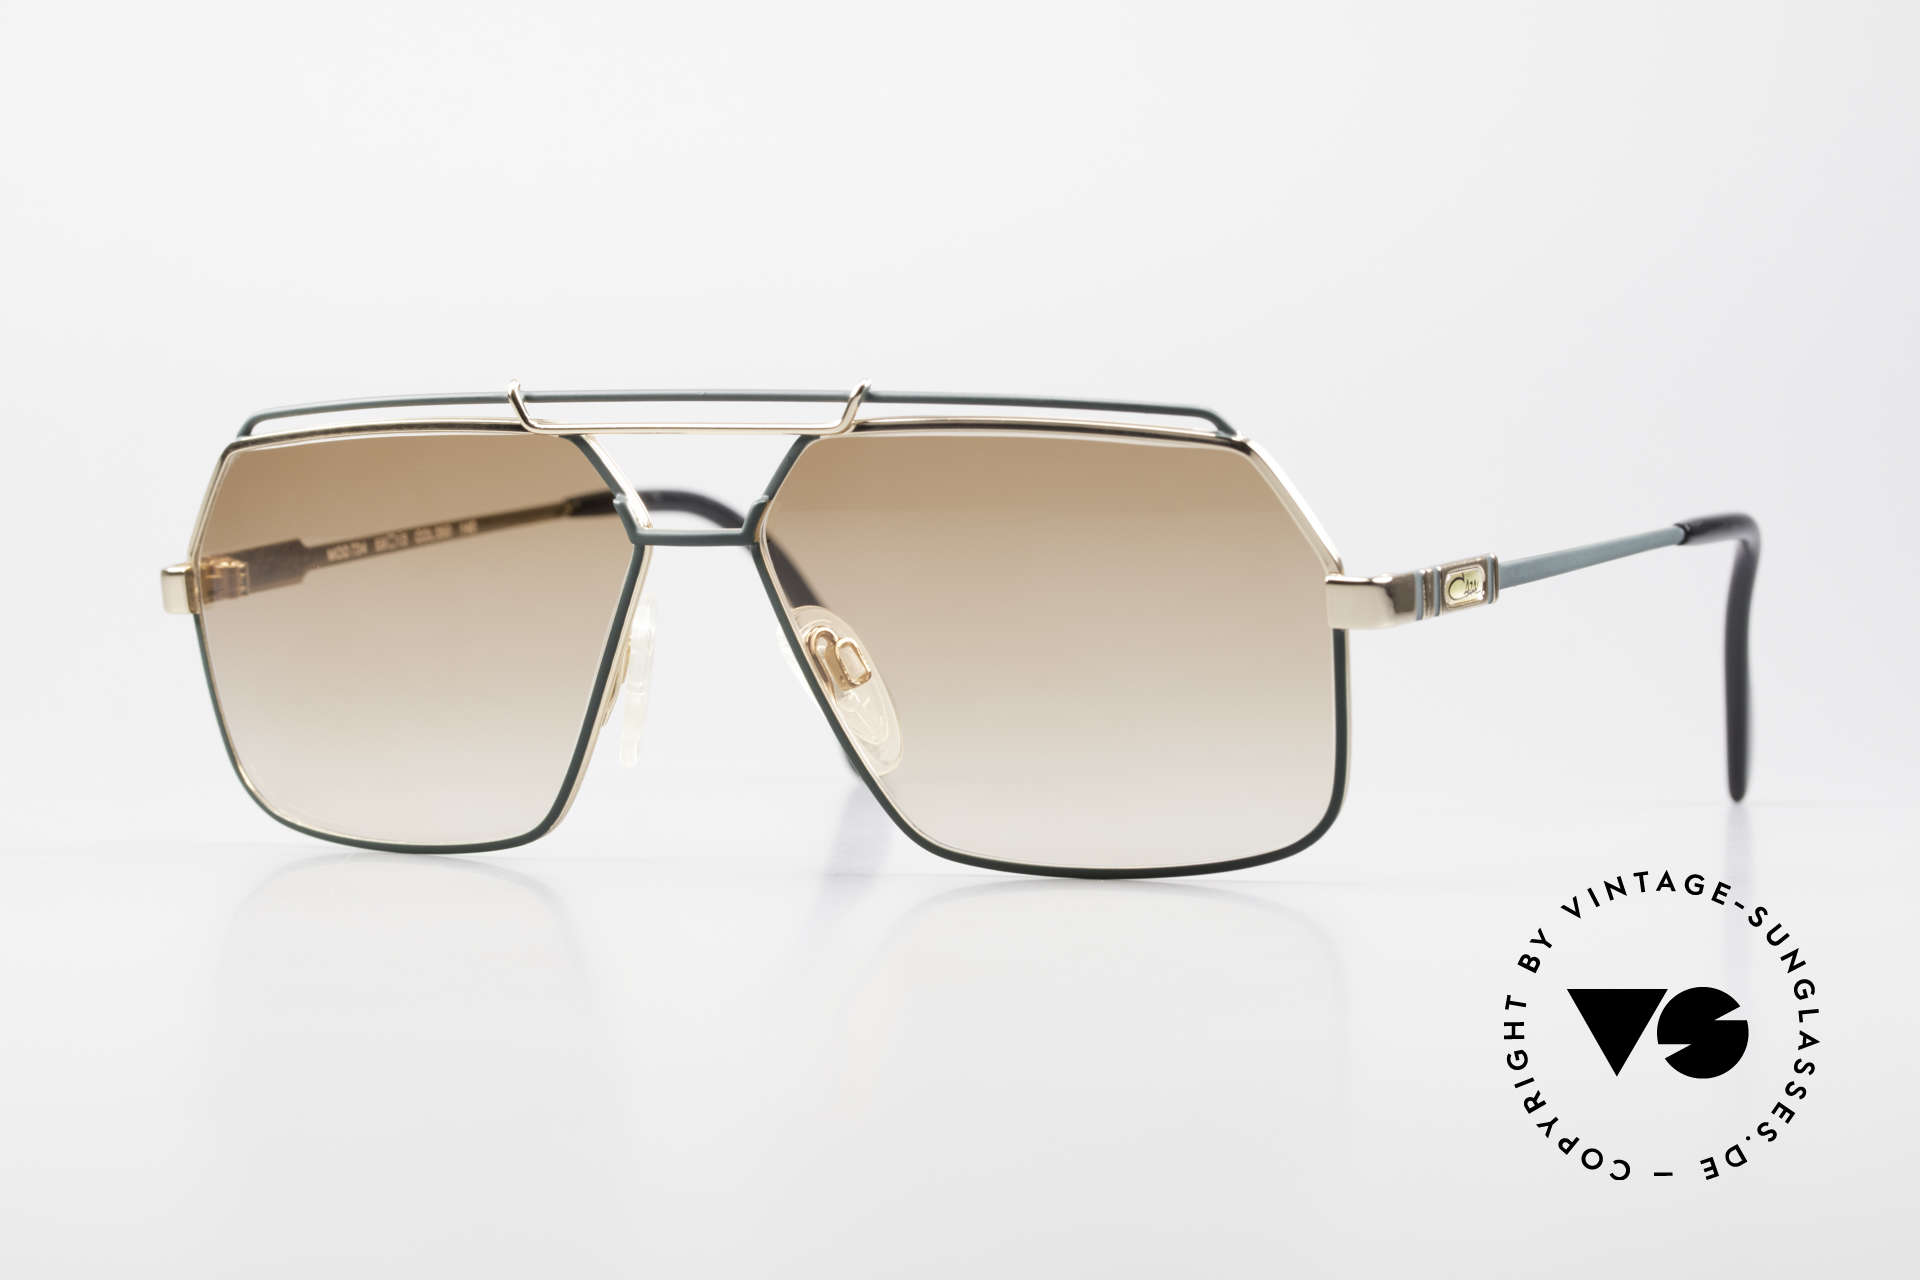 Cazal 734 1980's West Germany Shades, classic Cazal sunglasses for men from 1987/1988, Made for Men